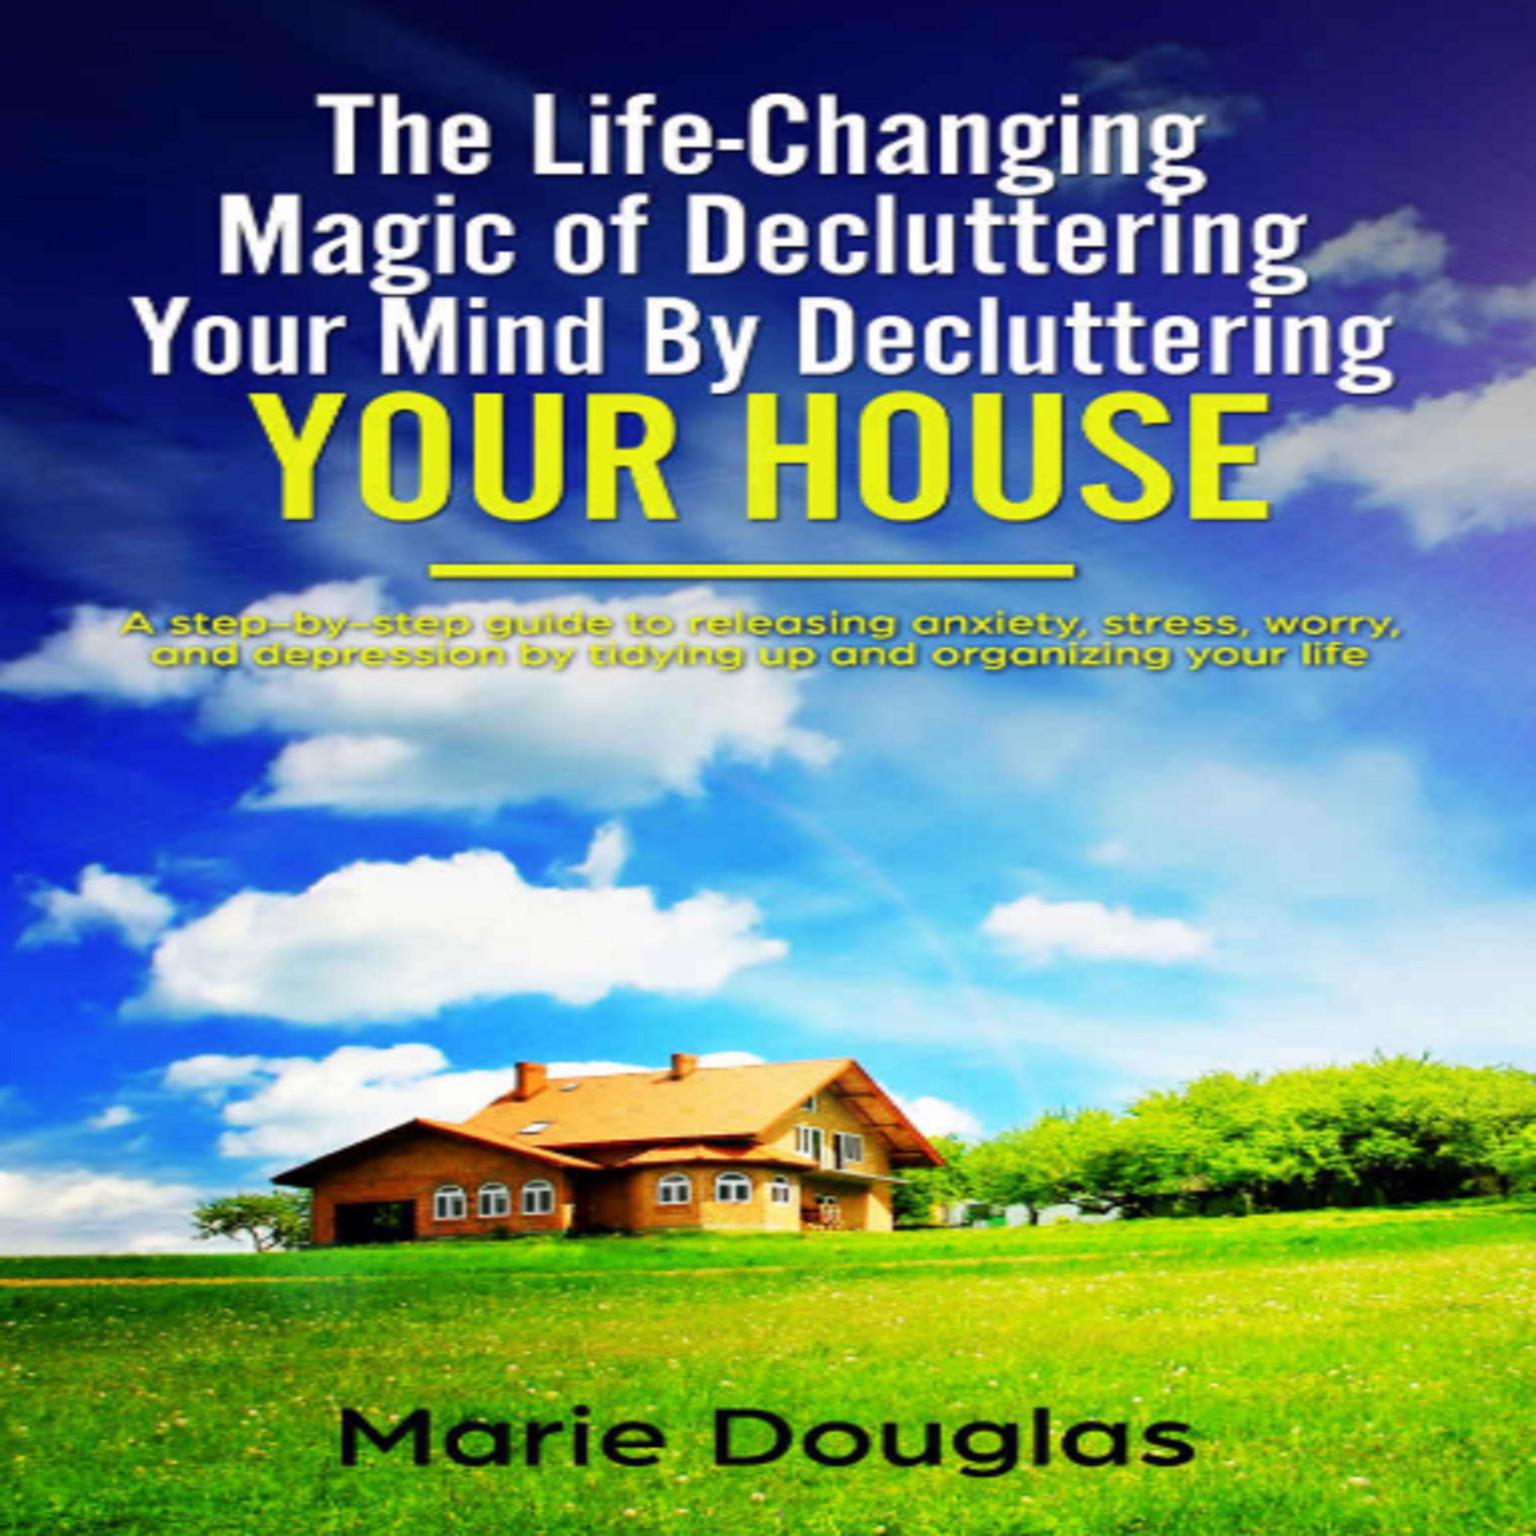 The Life-Changing Magic of Decluttering Your Mind By Decluttering Your House Audiobook, by Marie Douglas